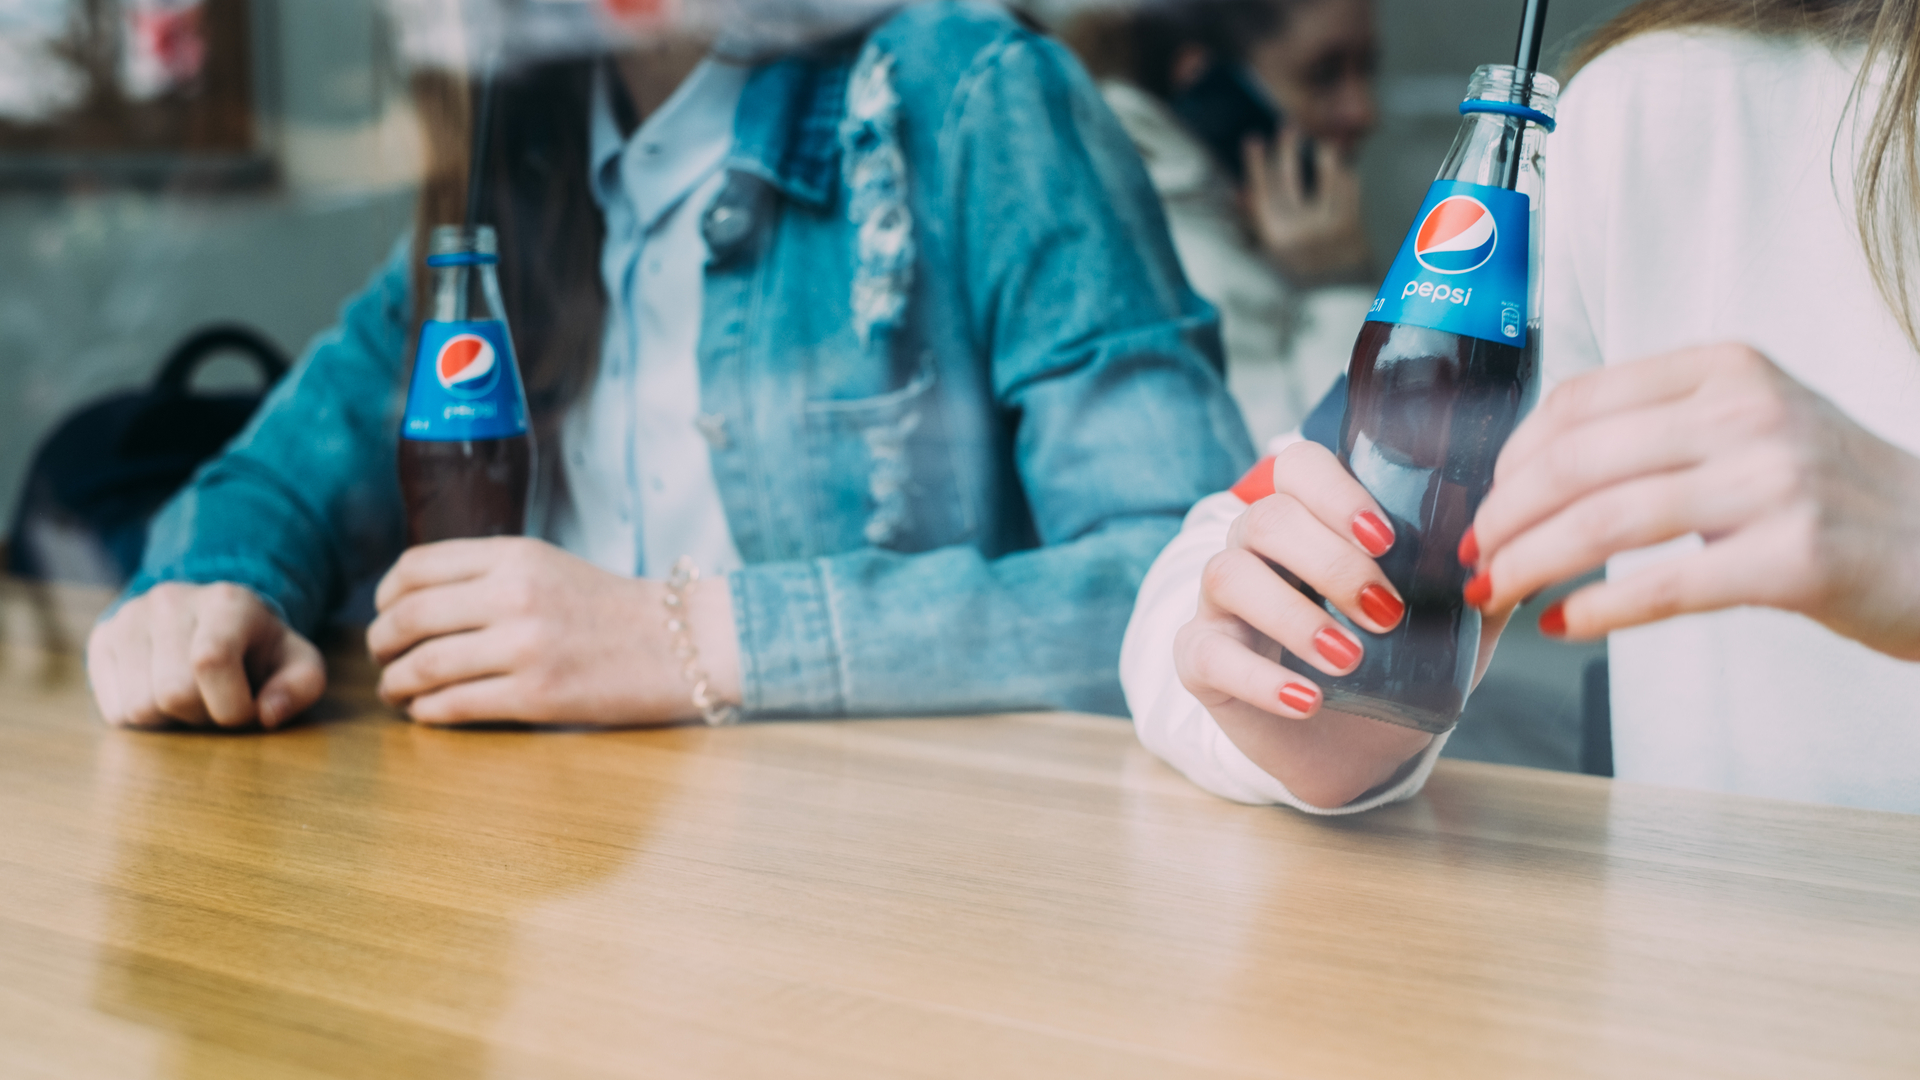 Pepsi's brand increases by 44% following advert fiasco.